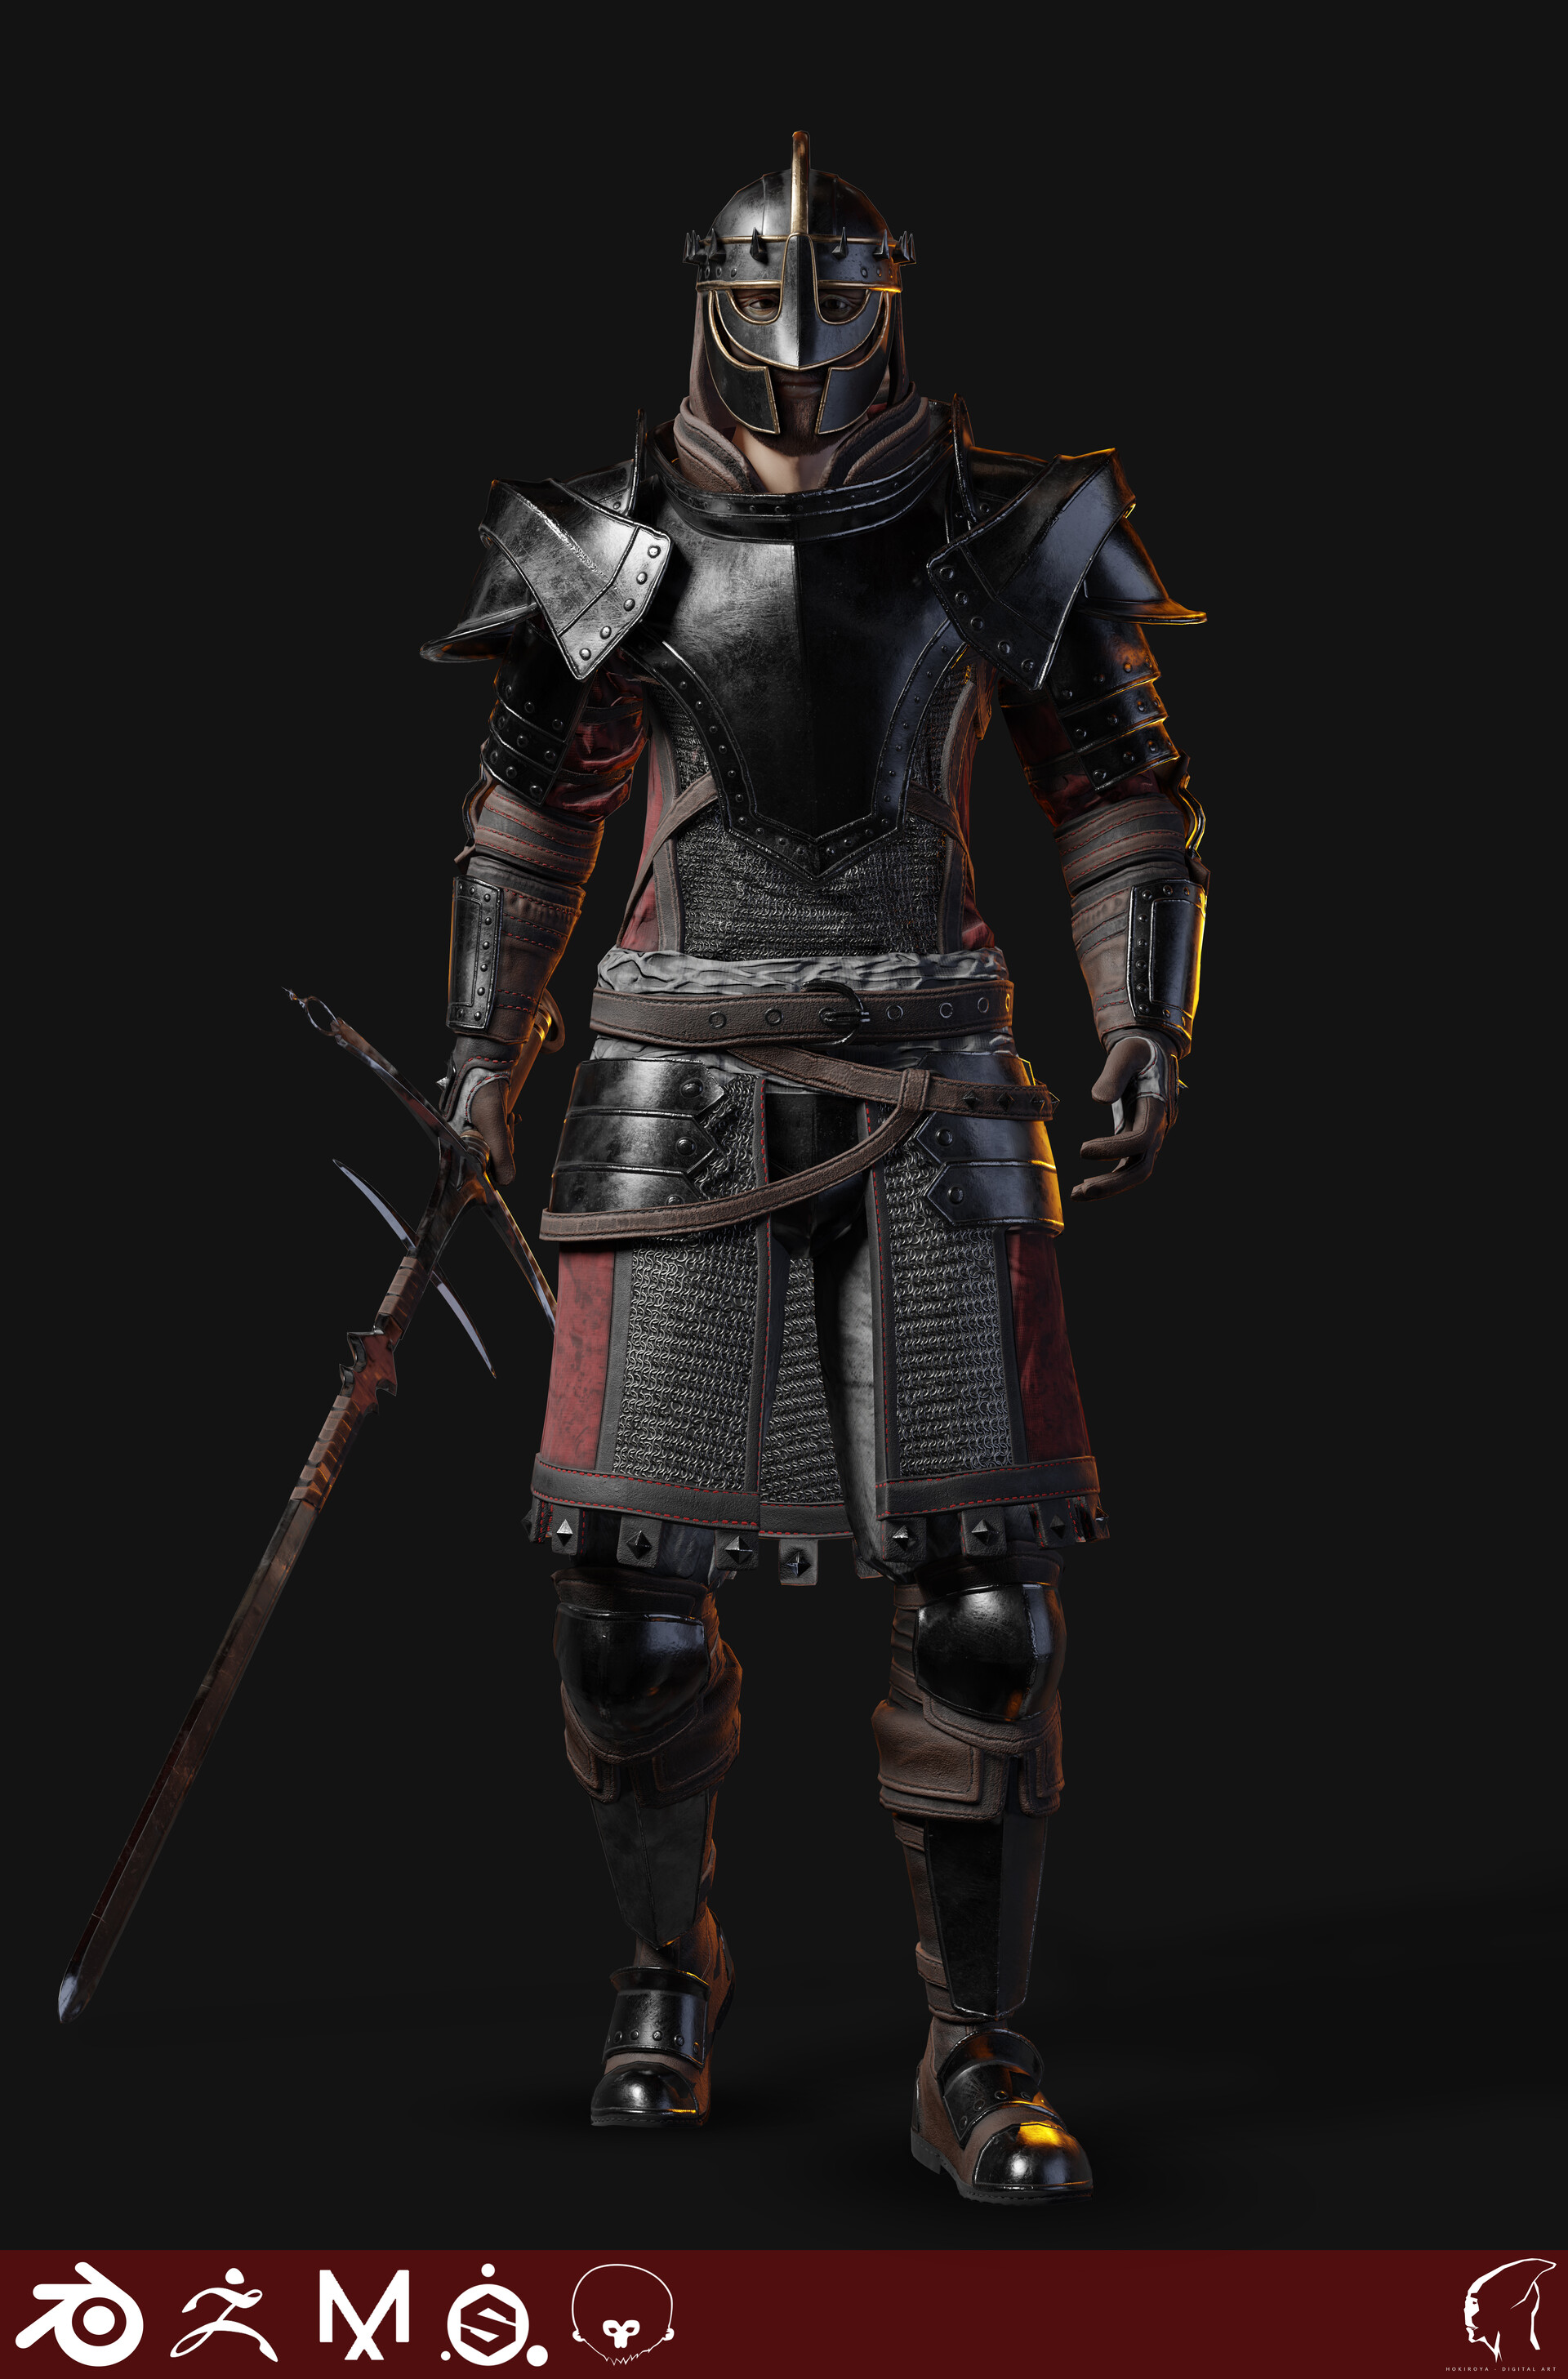 ArtStation - Knight - Realtime/Game ready character, Michał